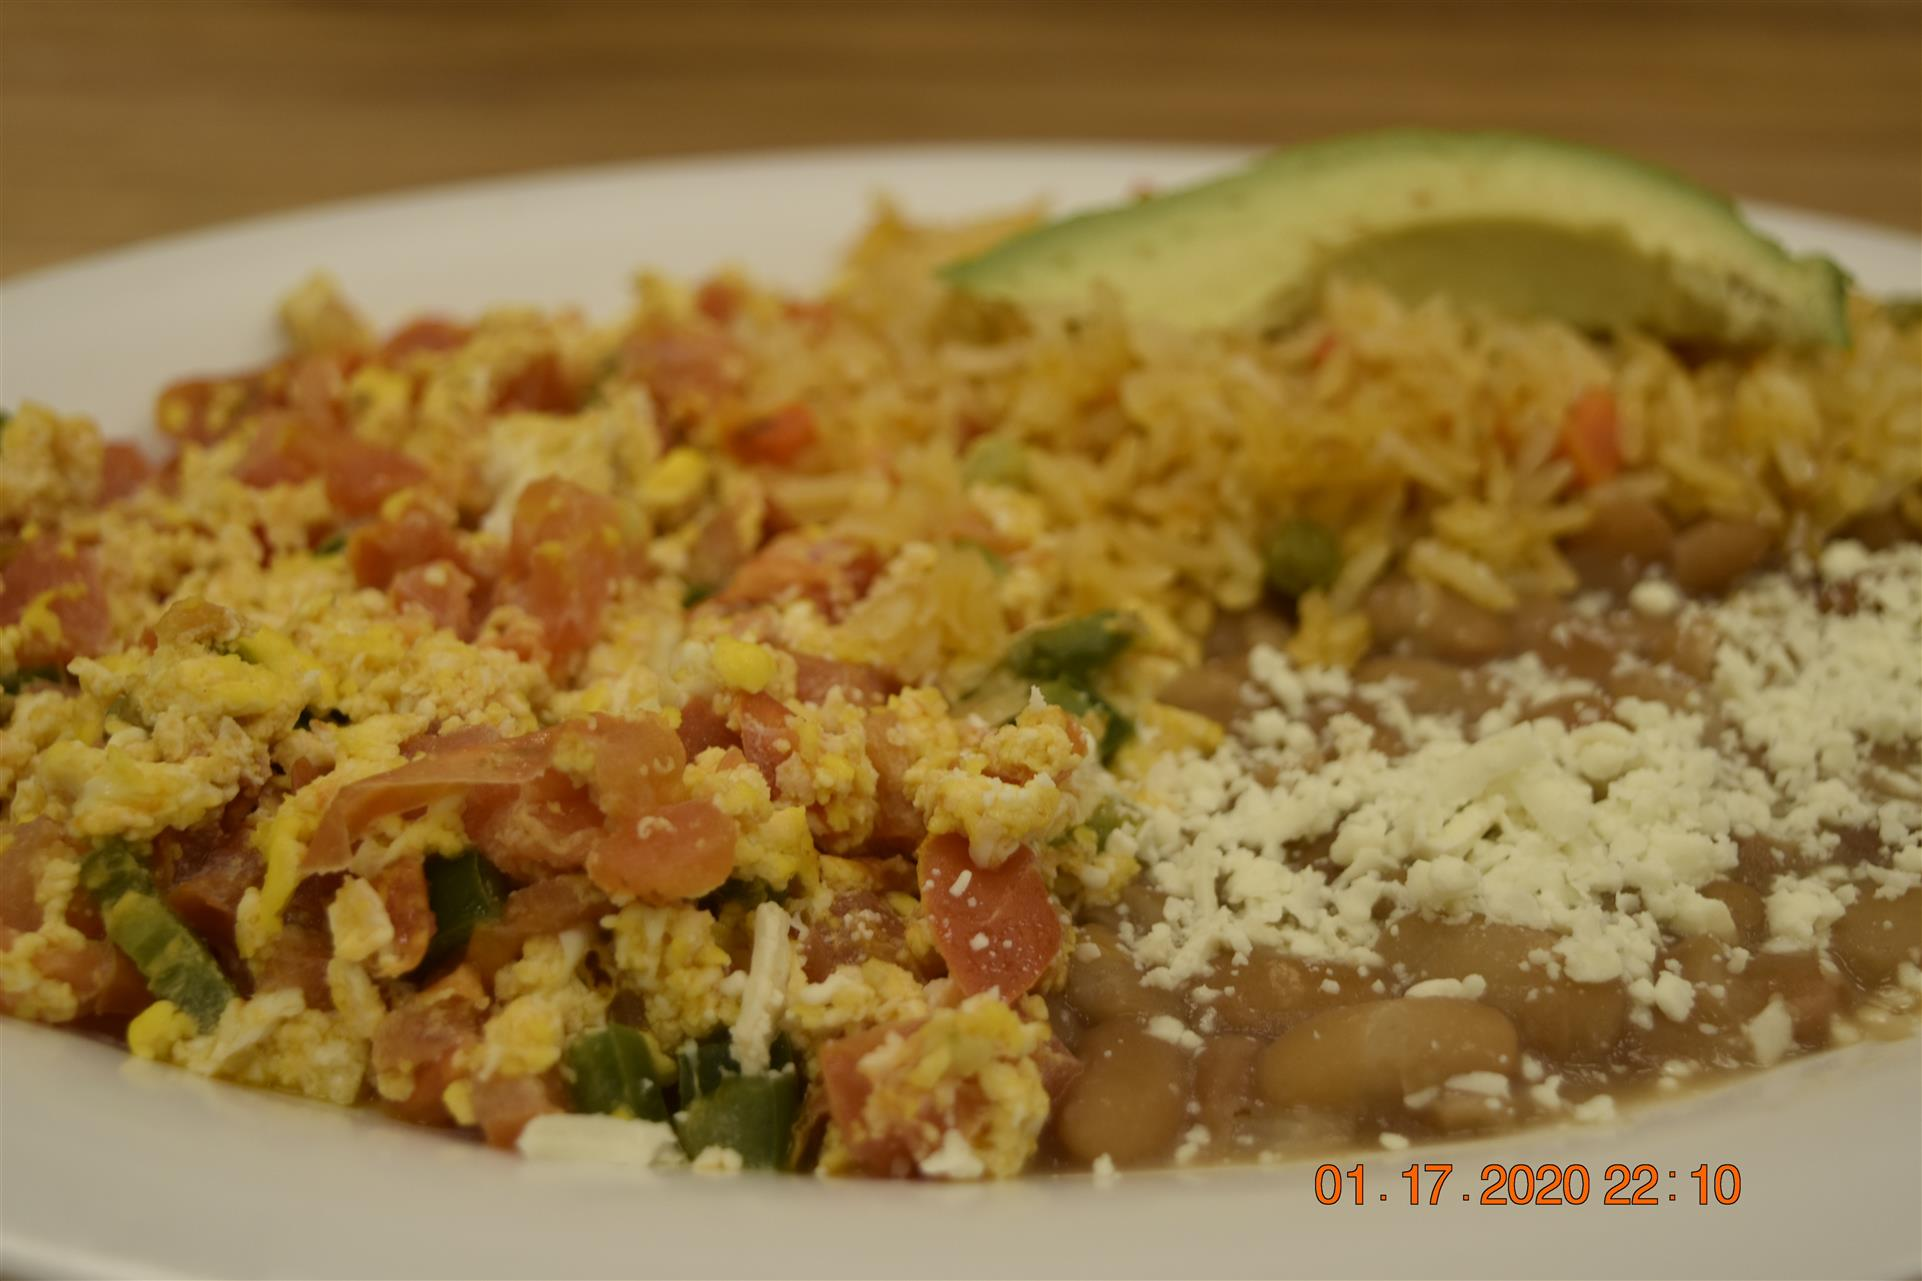 scrambled eggs with vegetables, and side of rice and beans